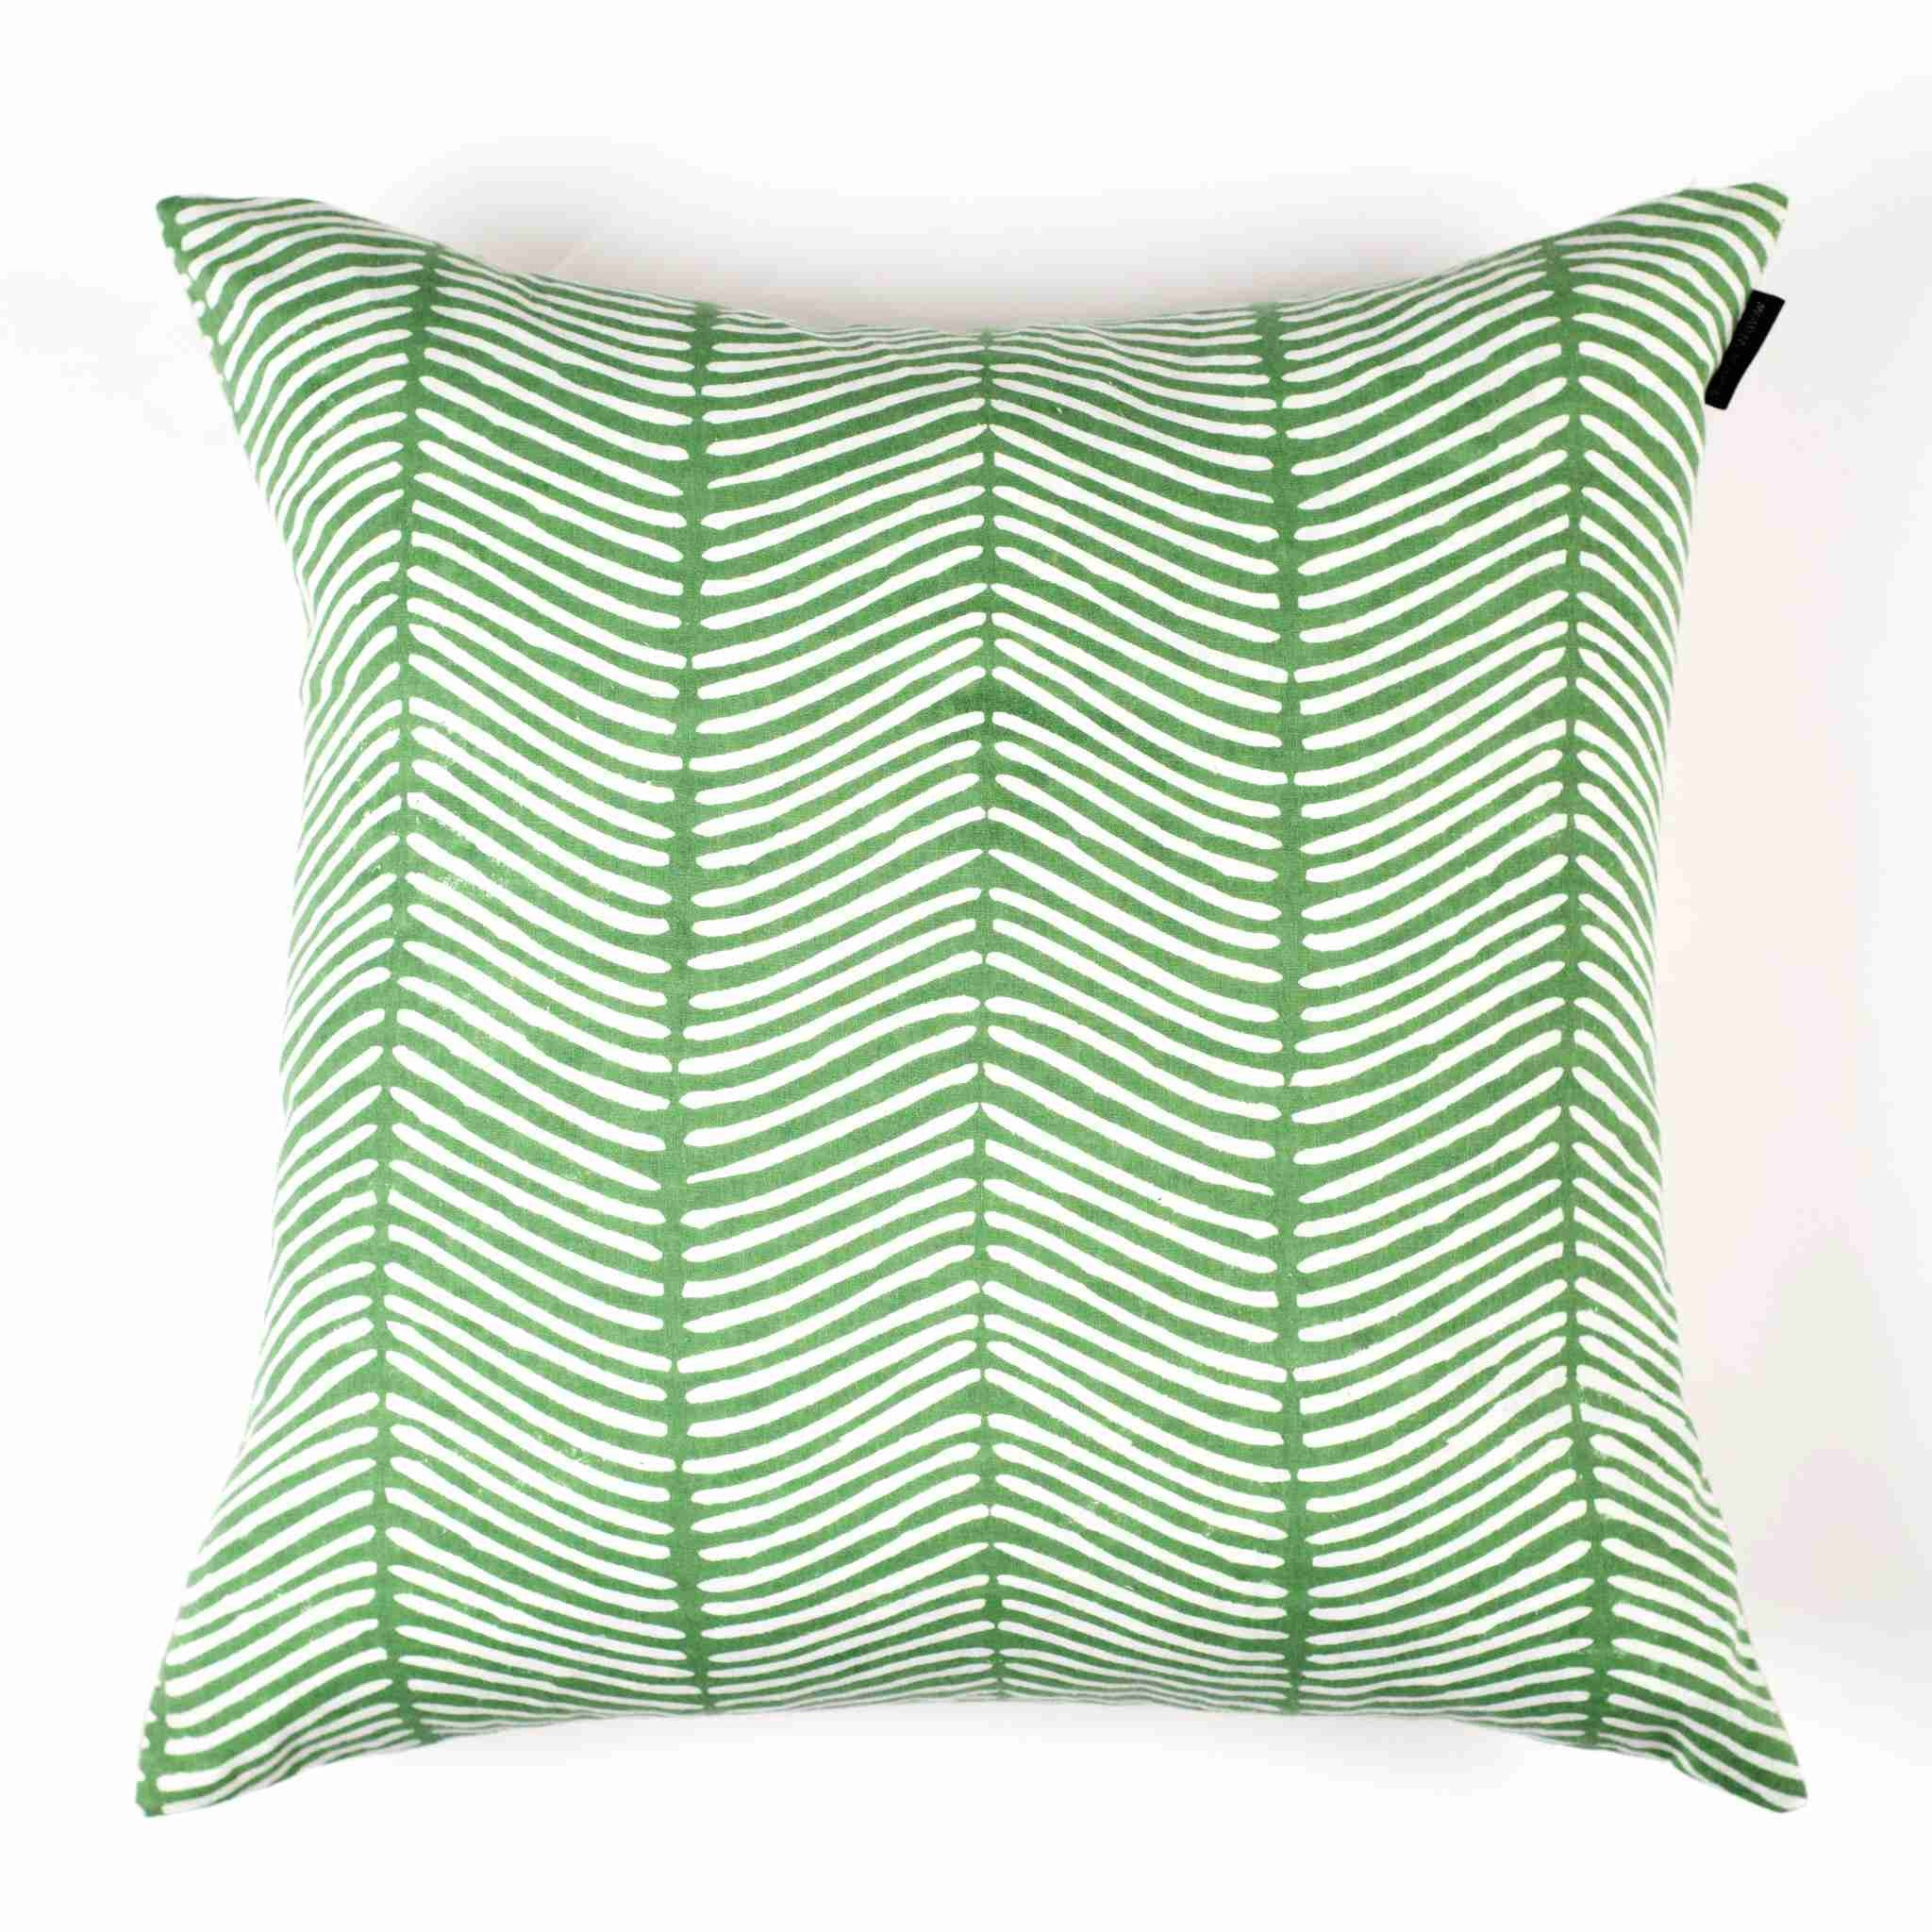 Curved Herringbone Pillow Cover - Leafy Green